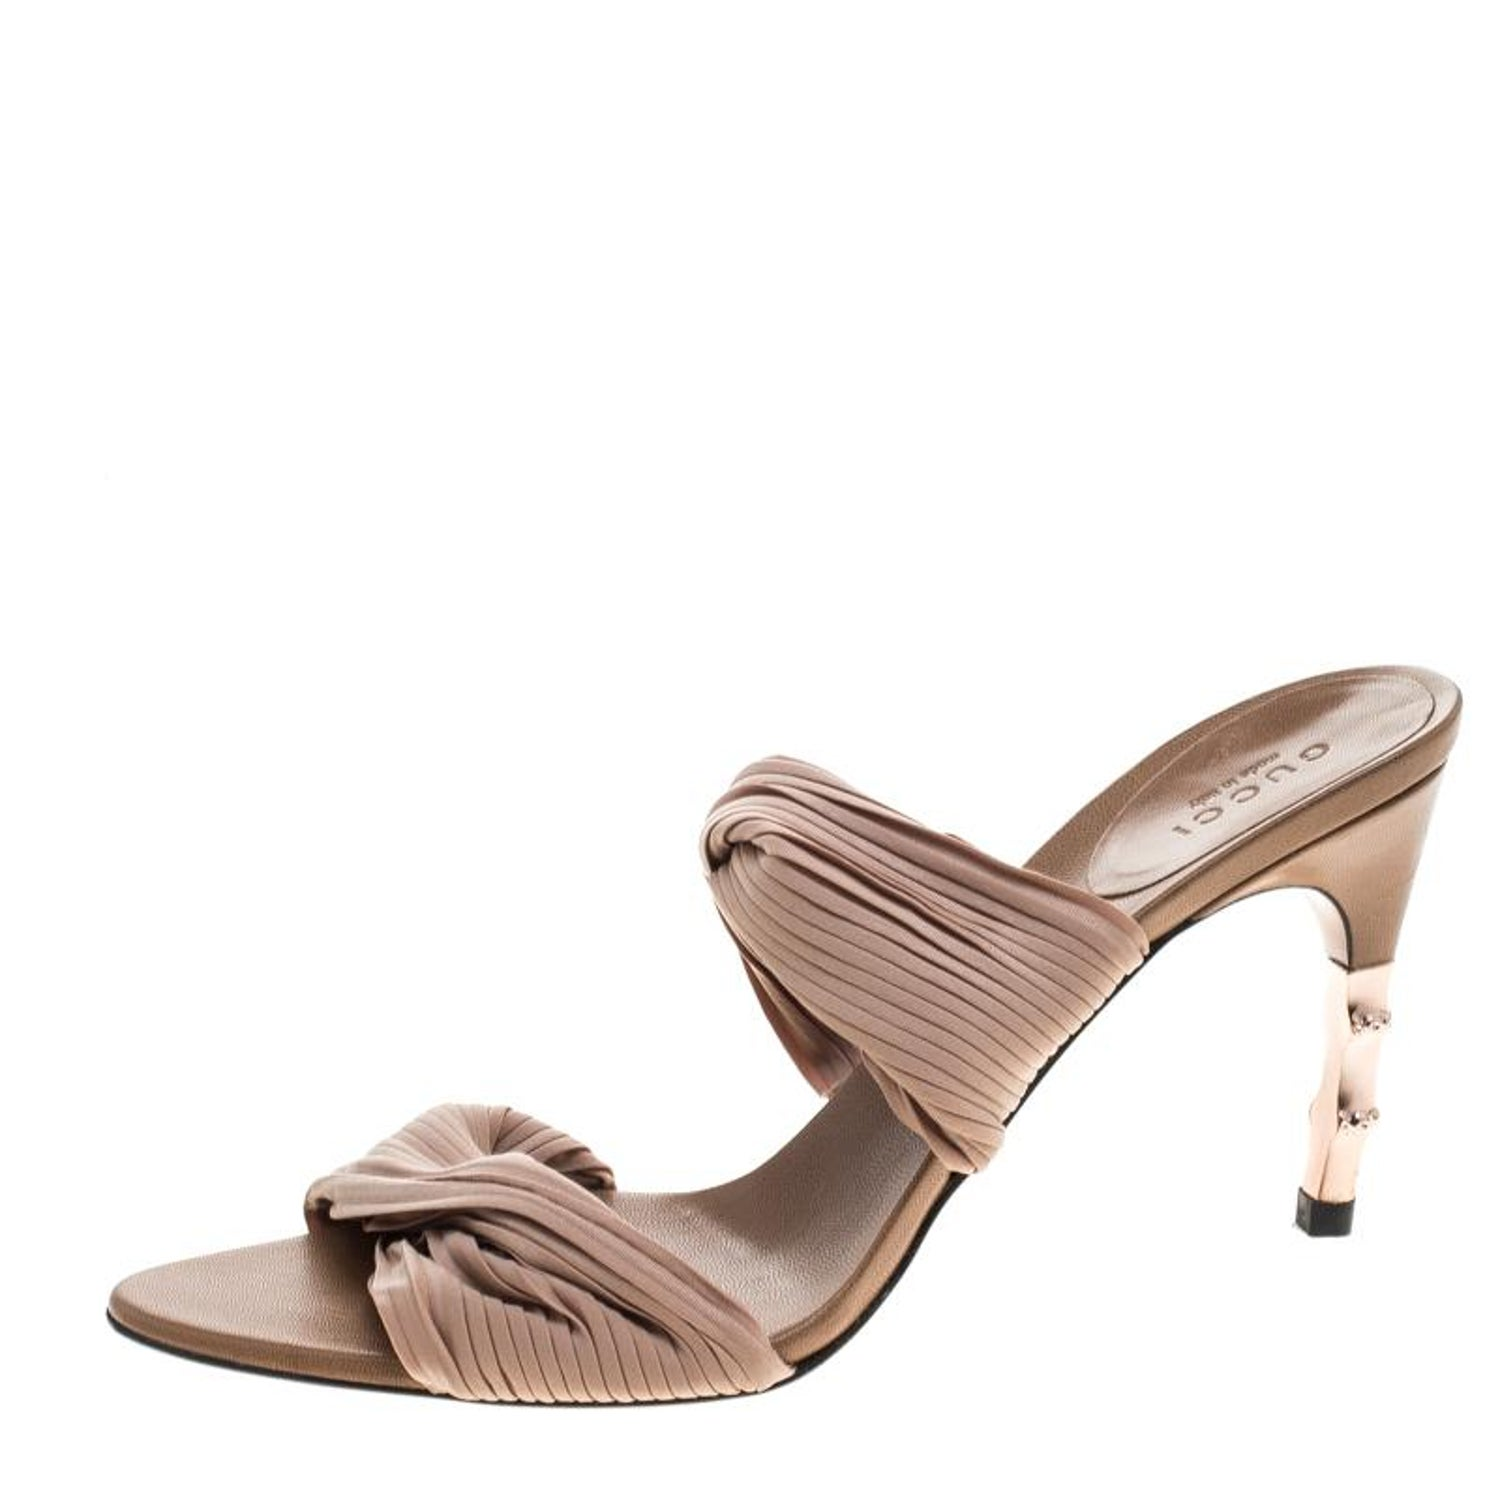 654dfaa1d Gucci Beige Stretch Plisse Fabric Bamboo Heel Slides Size 38.5 at 1stdibs